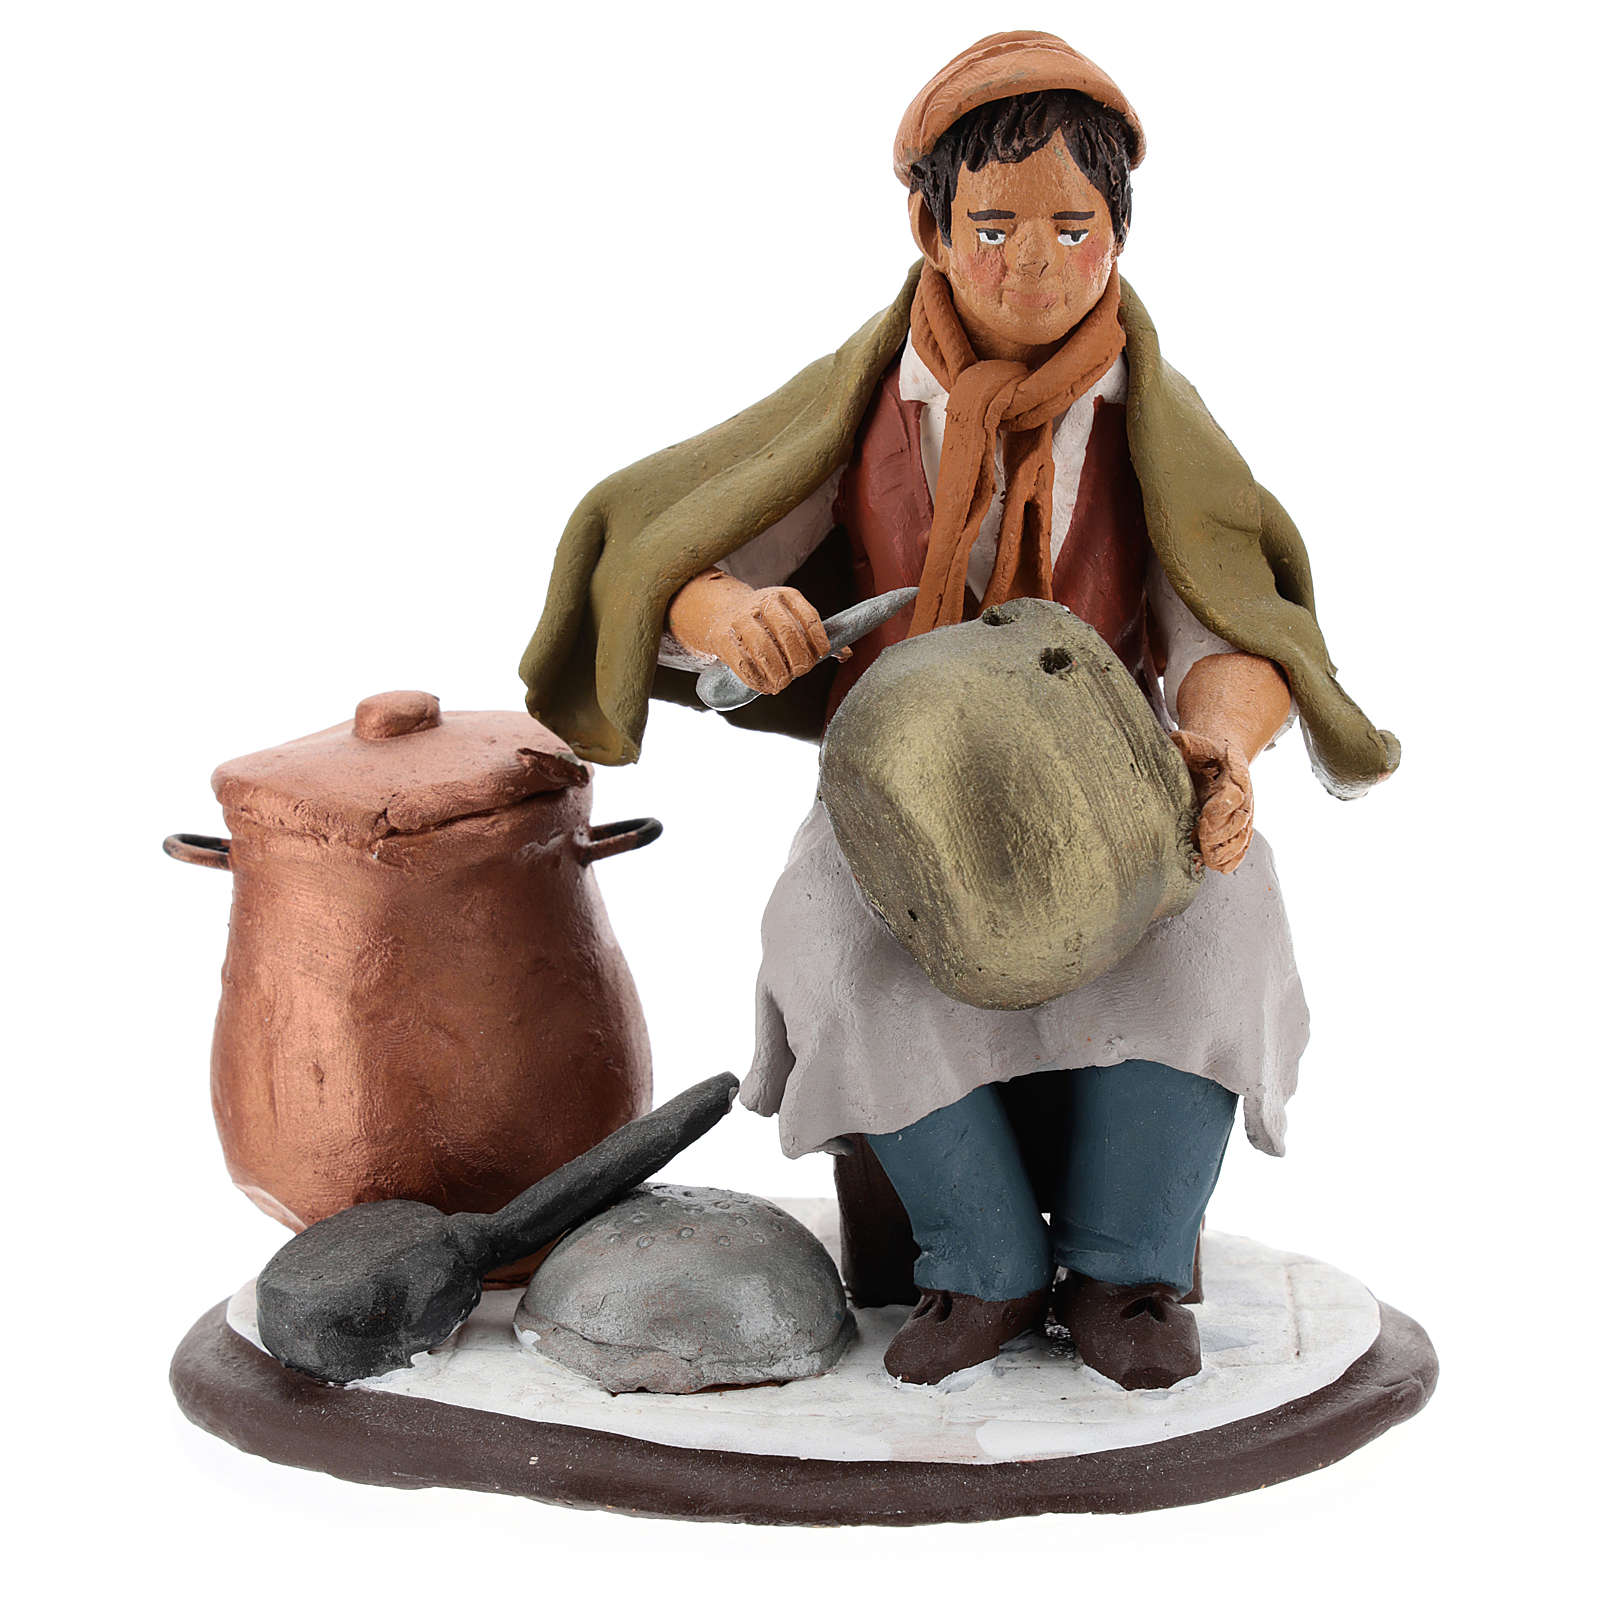 Nativity set accessory, Coppersmith clay figurine 4